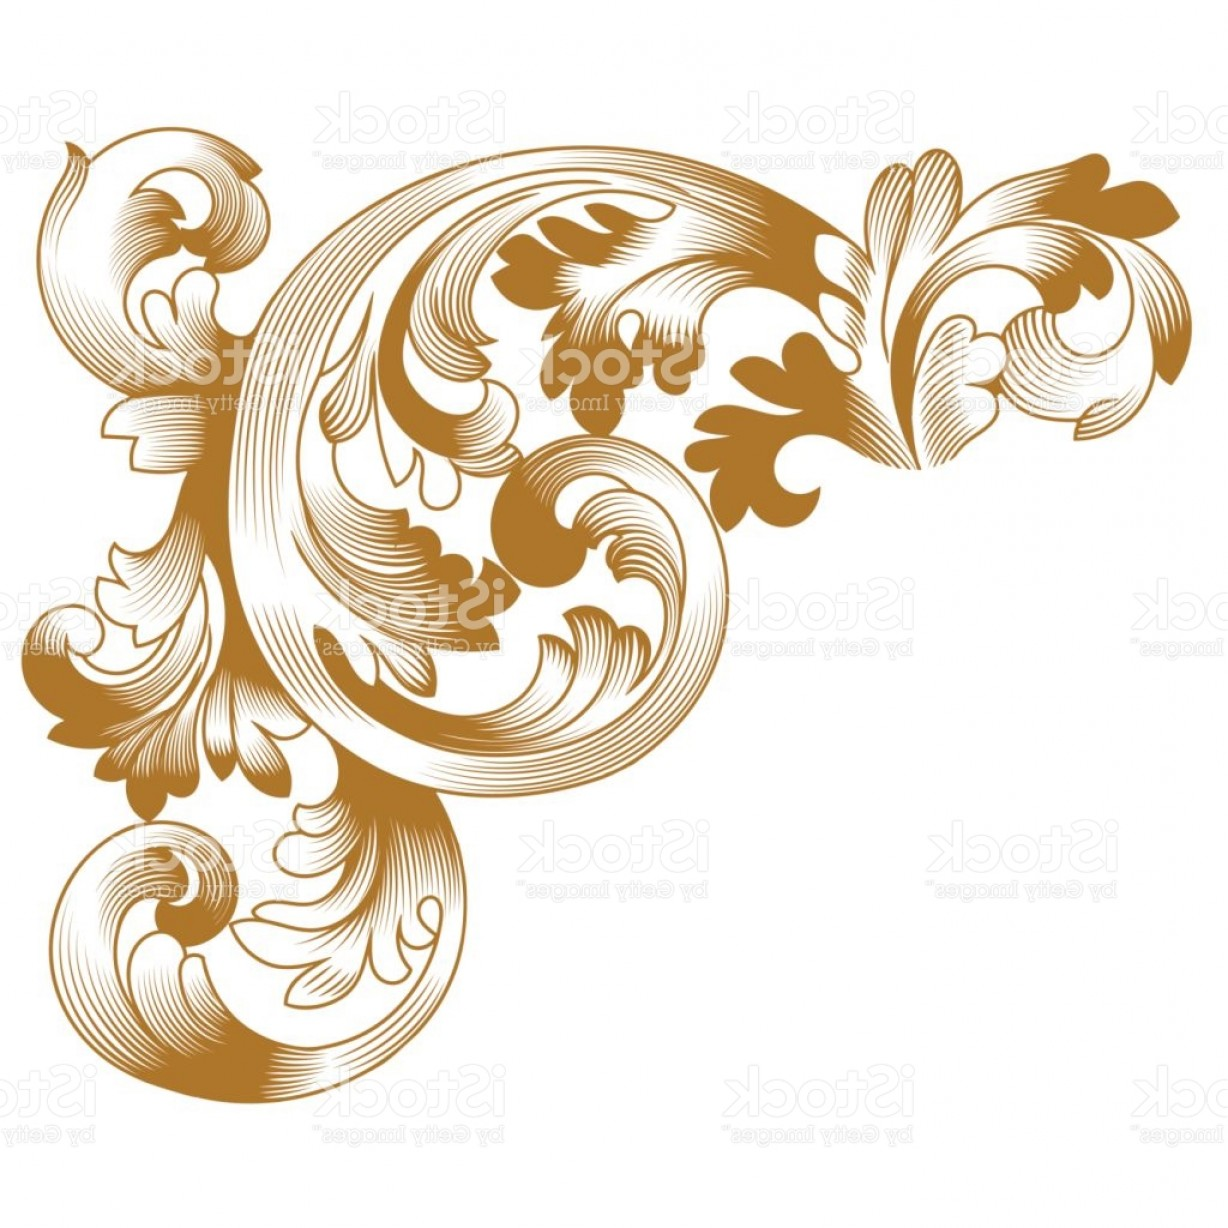 Baroque Vector Clip Art: Golden Vintage Baroque Ornament Corner Retro Pattern Antique Style Acanthus Gm